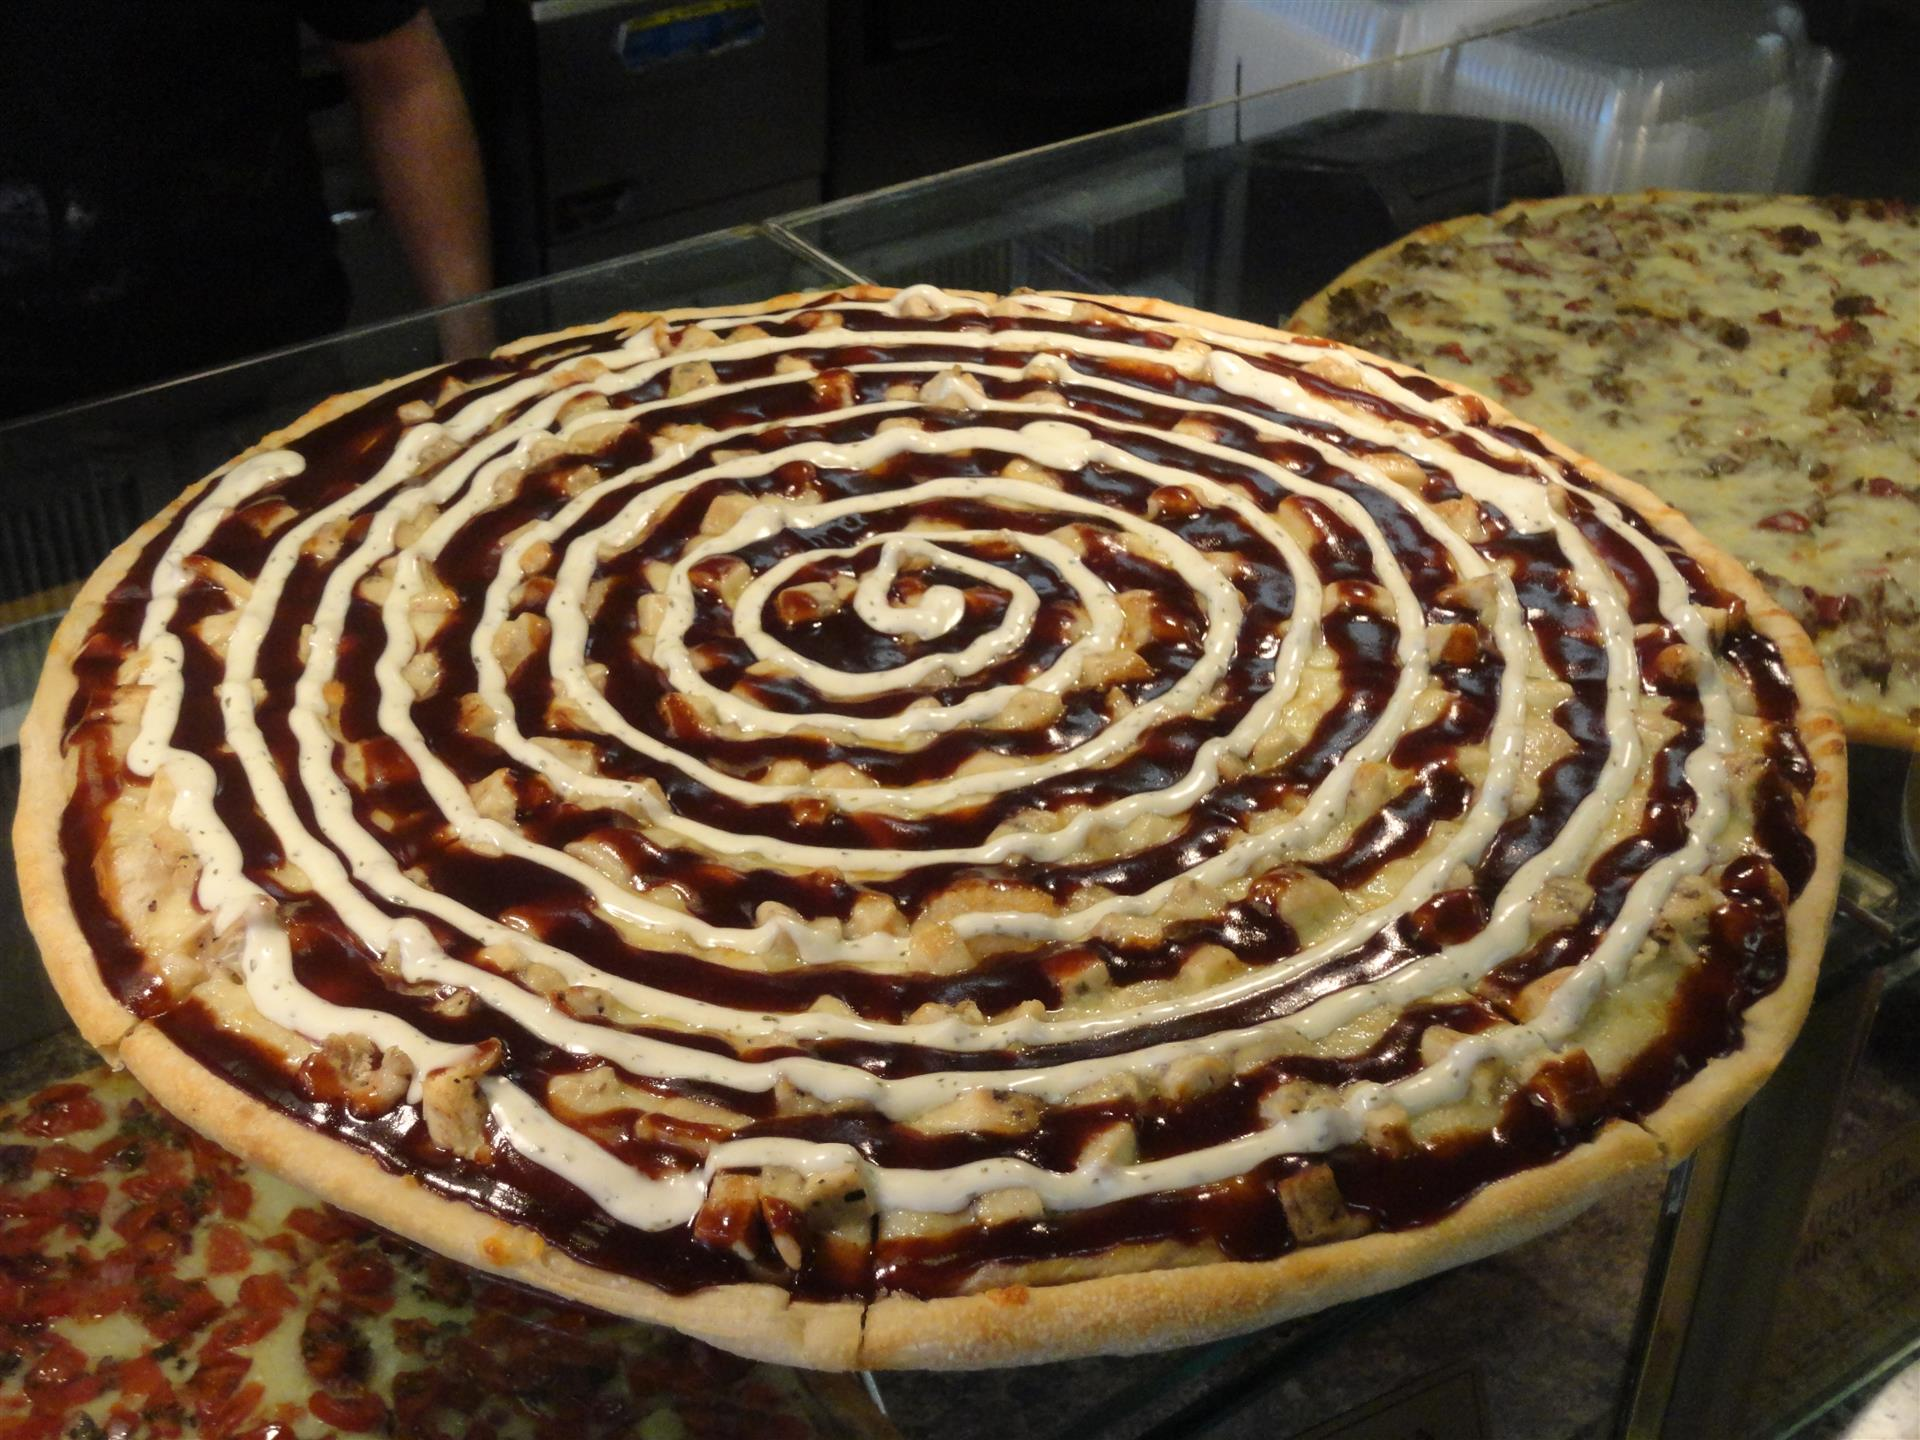 Pizza pie with a spiral drizzle and toppings